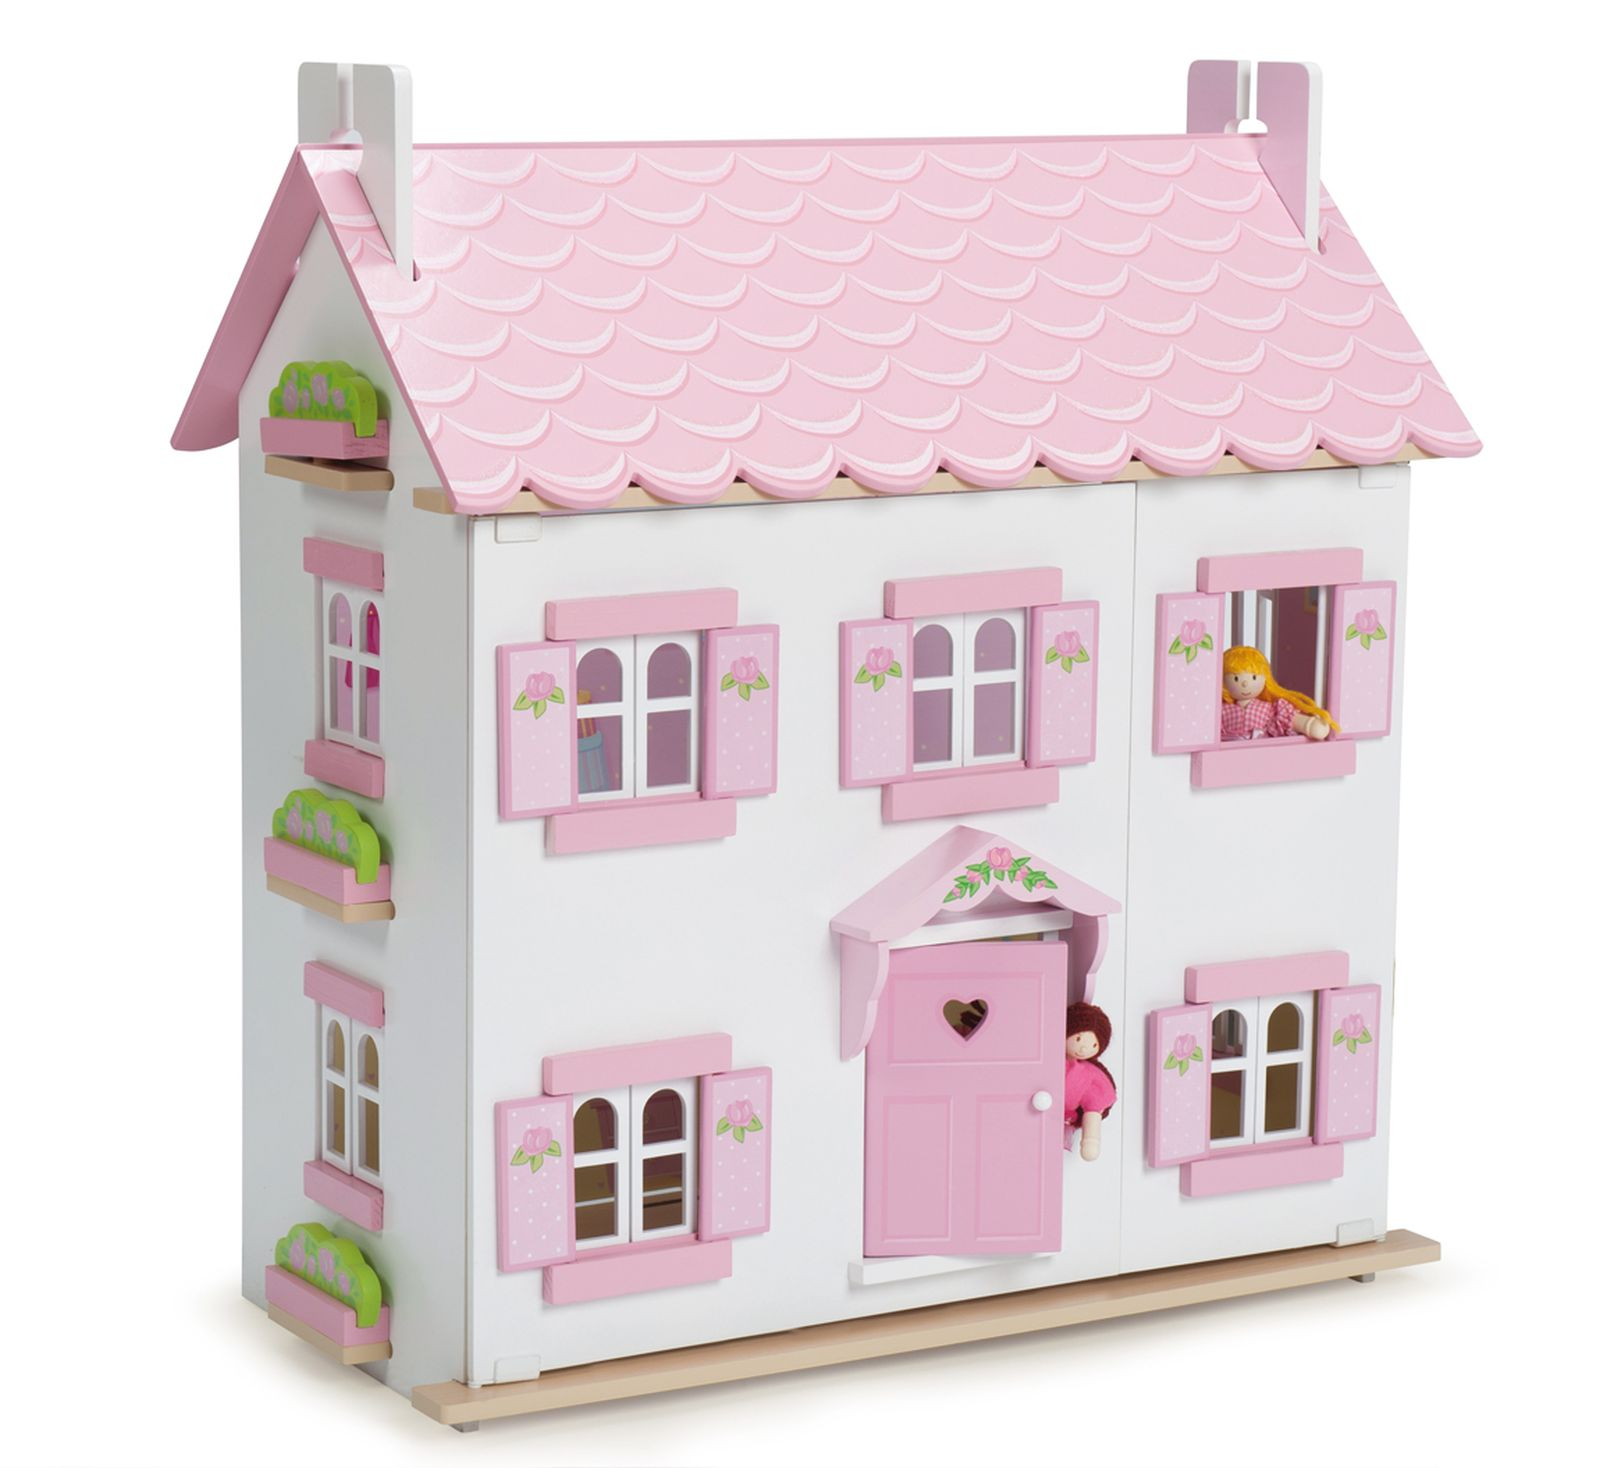 superb img of sophies dolls house comes presented in a beautiful colorful display with 797f3e